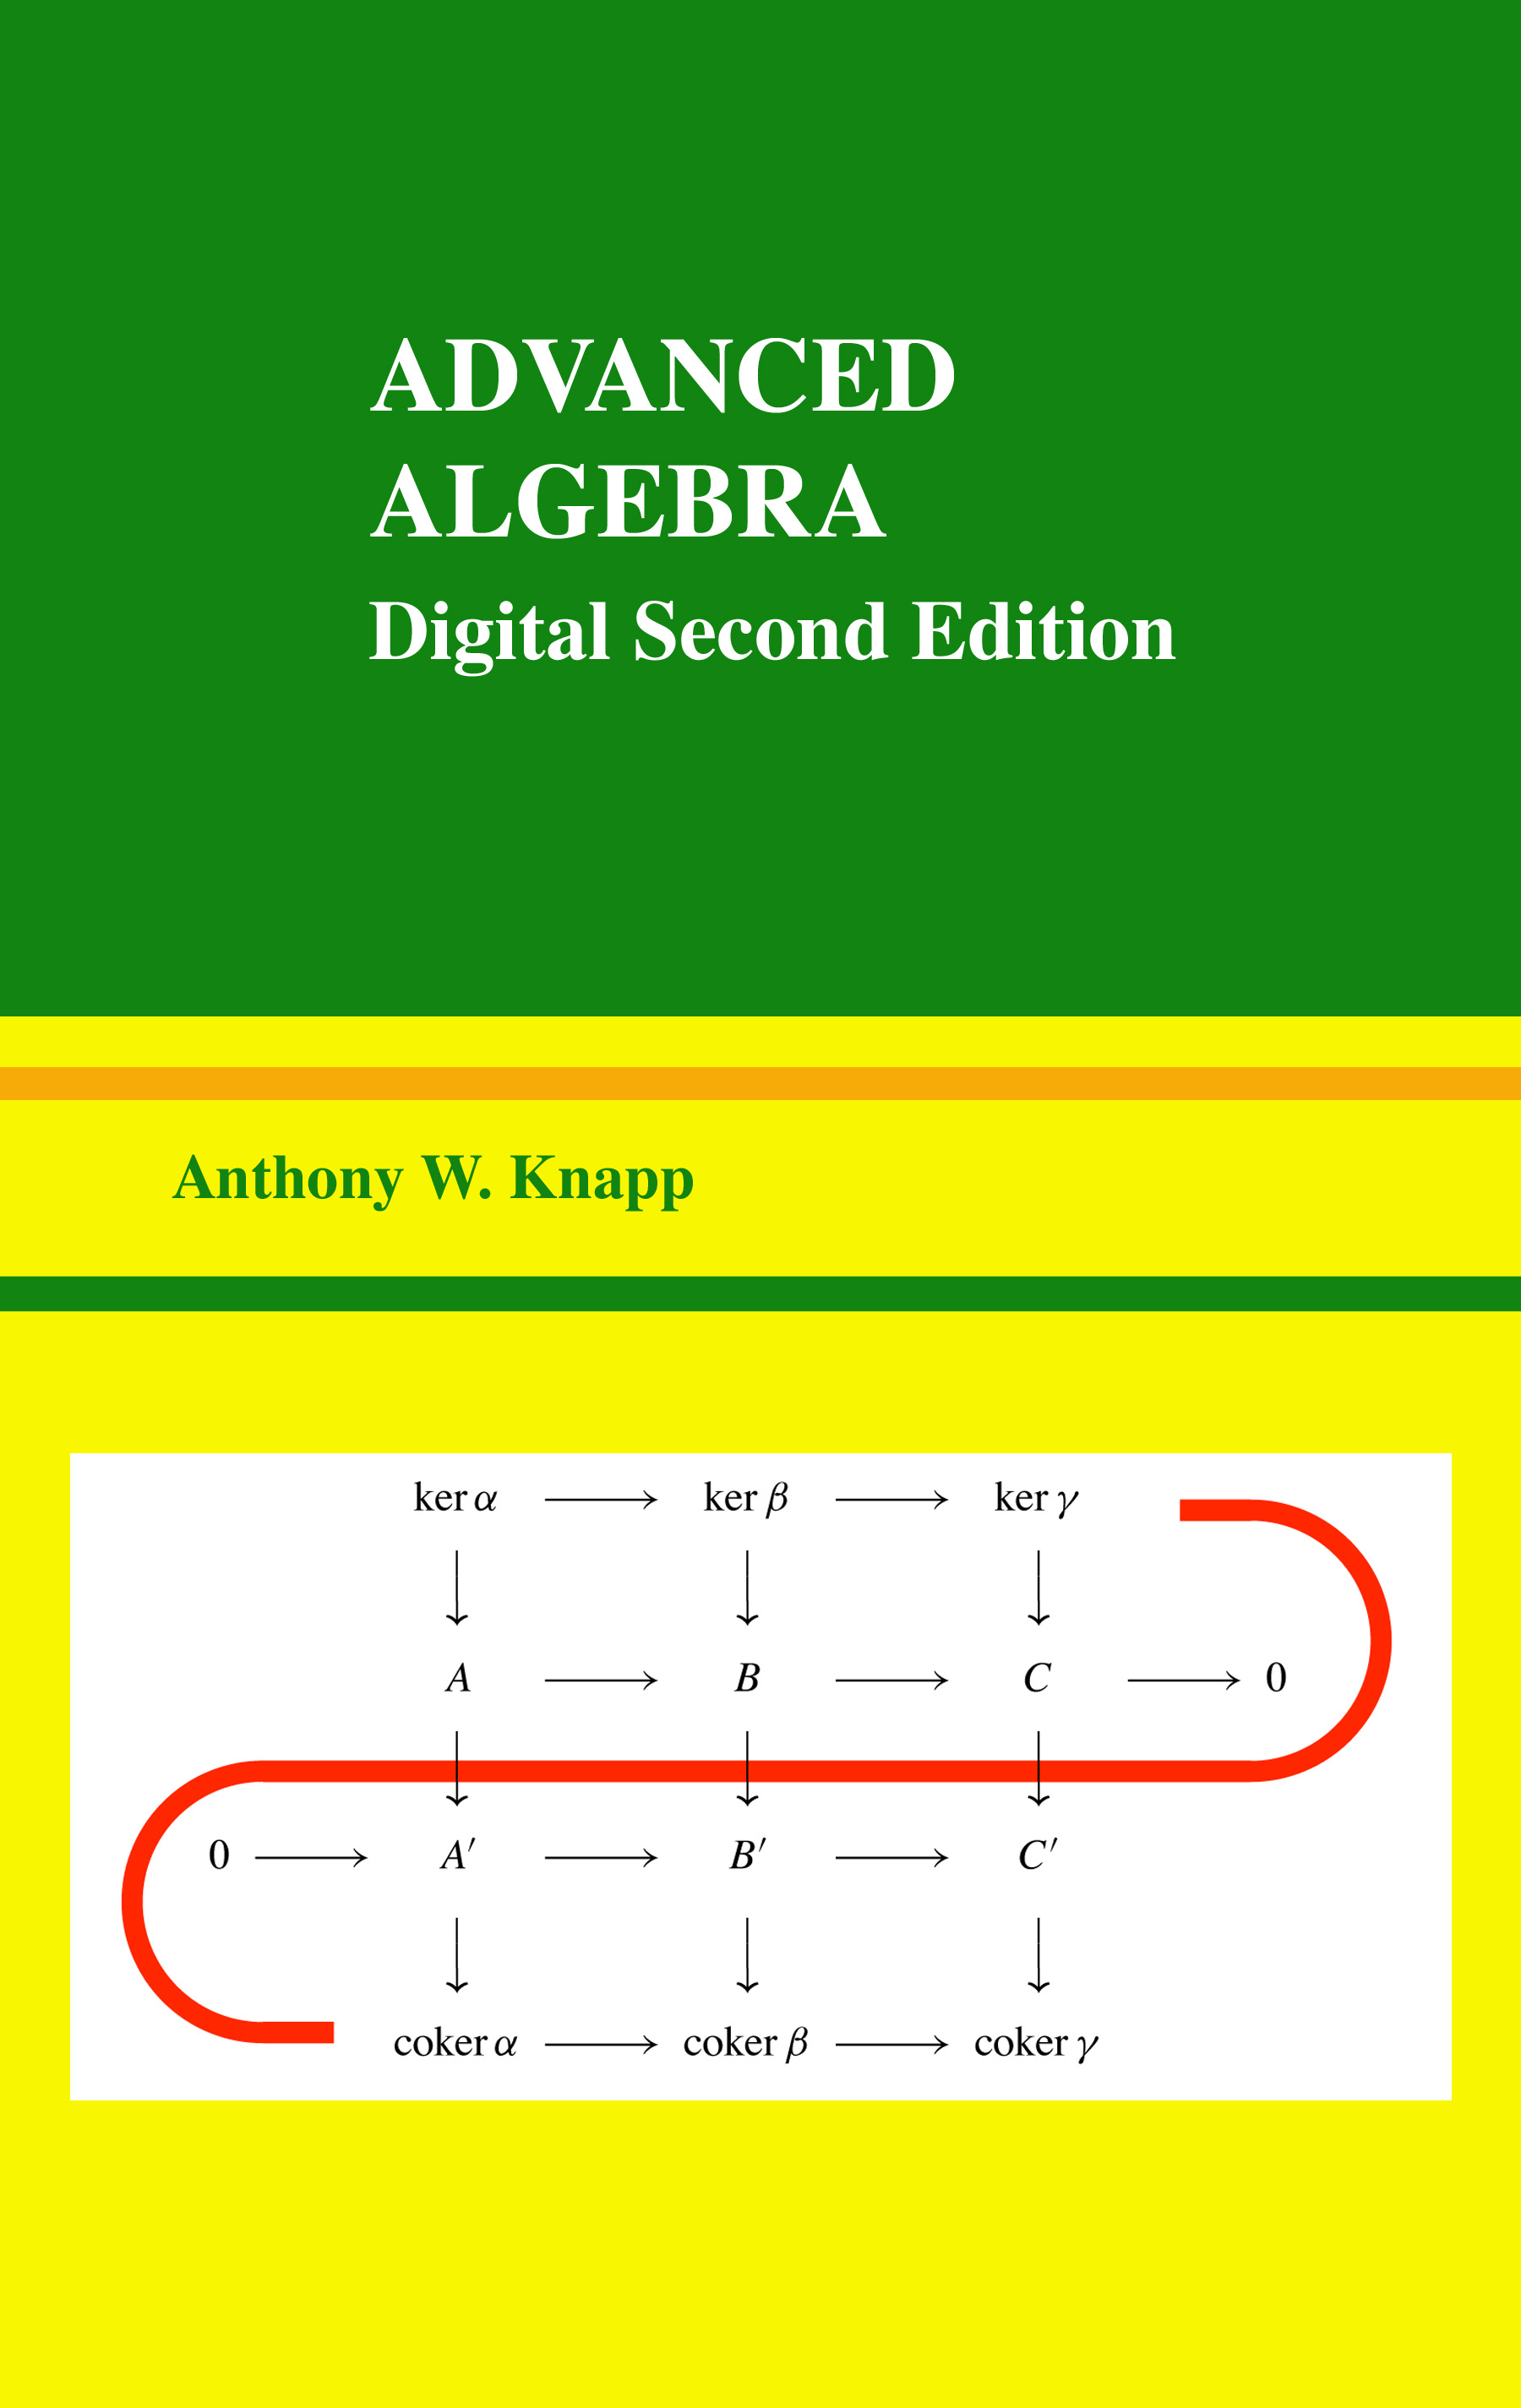 Download Free Books by Knapp